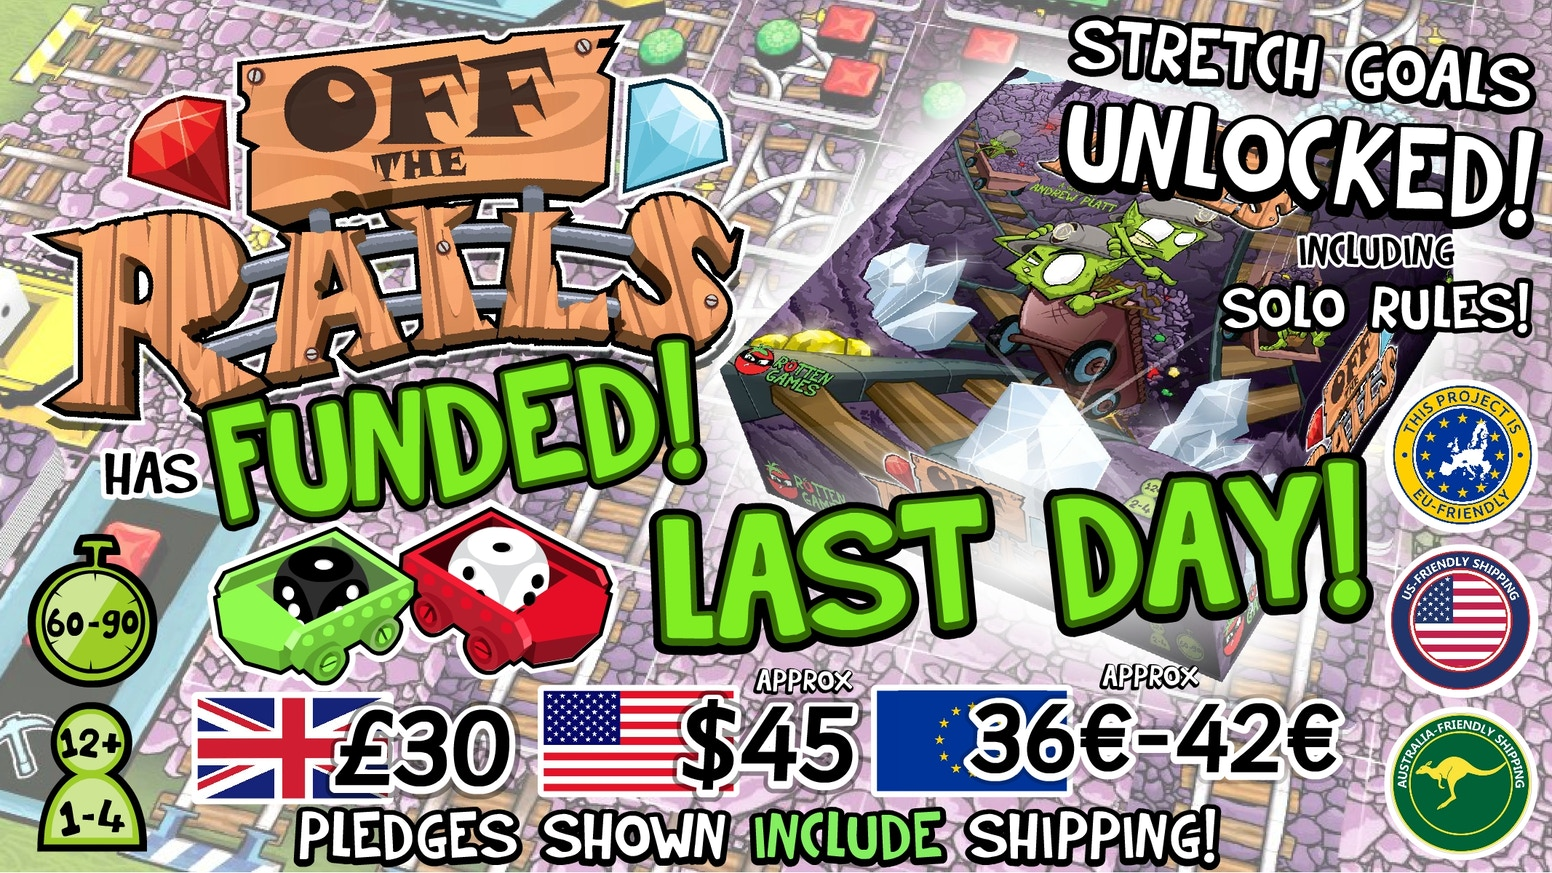 Off the Rails is a strategic table-top game of tile placement & risk / reward roller-coaster mechanics for 1-4 players for ages 12+.